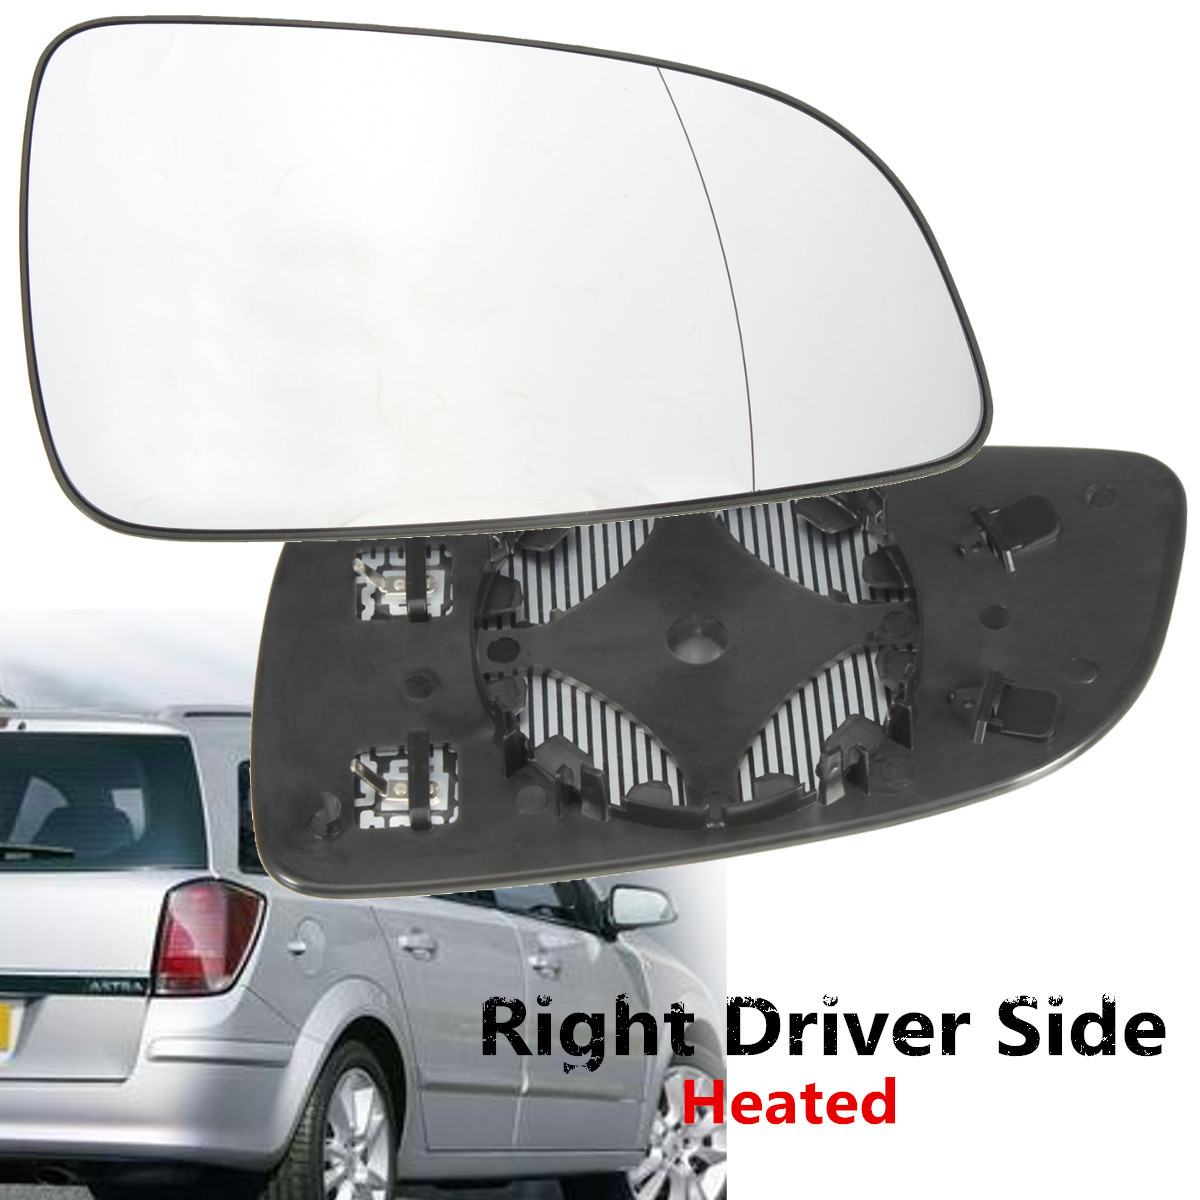 Right Left Driver Side Wing Mirror Glass Heated  Anti-fog Rainproof For VAUXHALL 2004 2005 2006 2007 2008 ASTRA H mk5